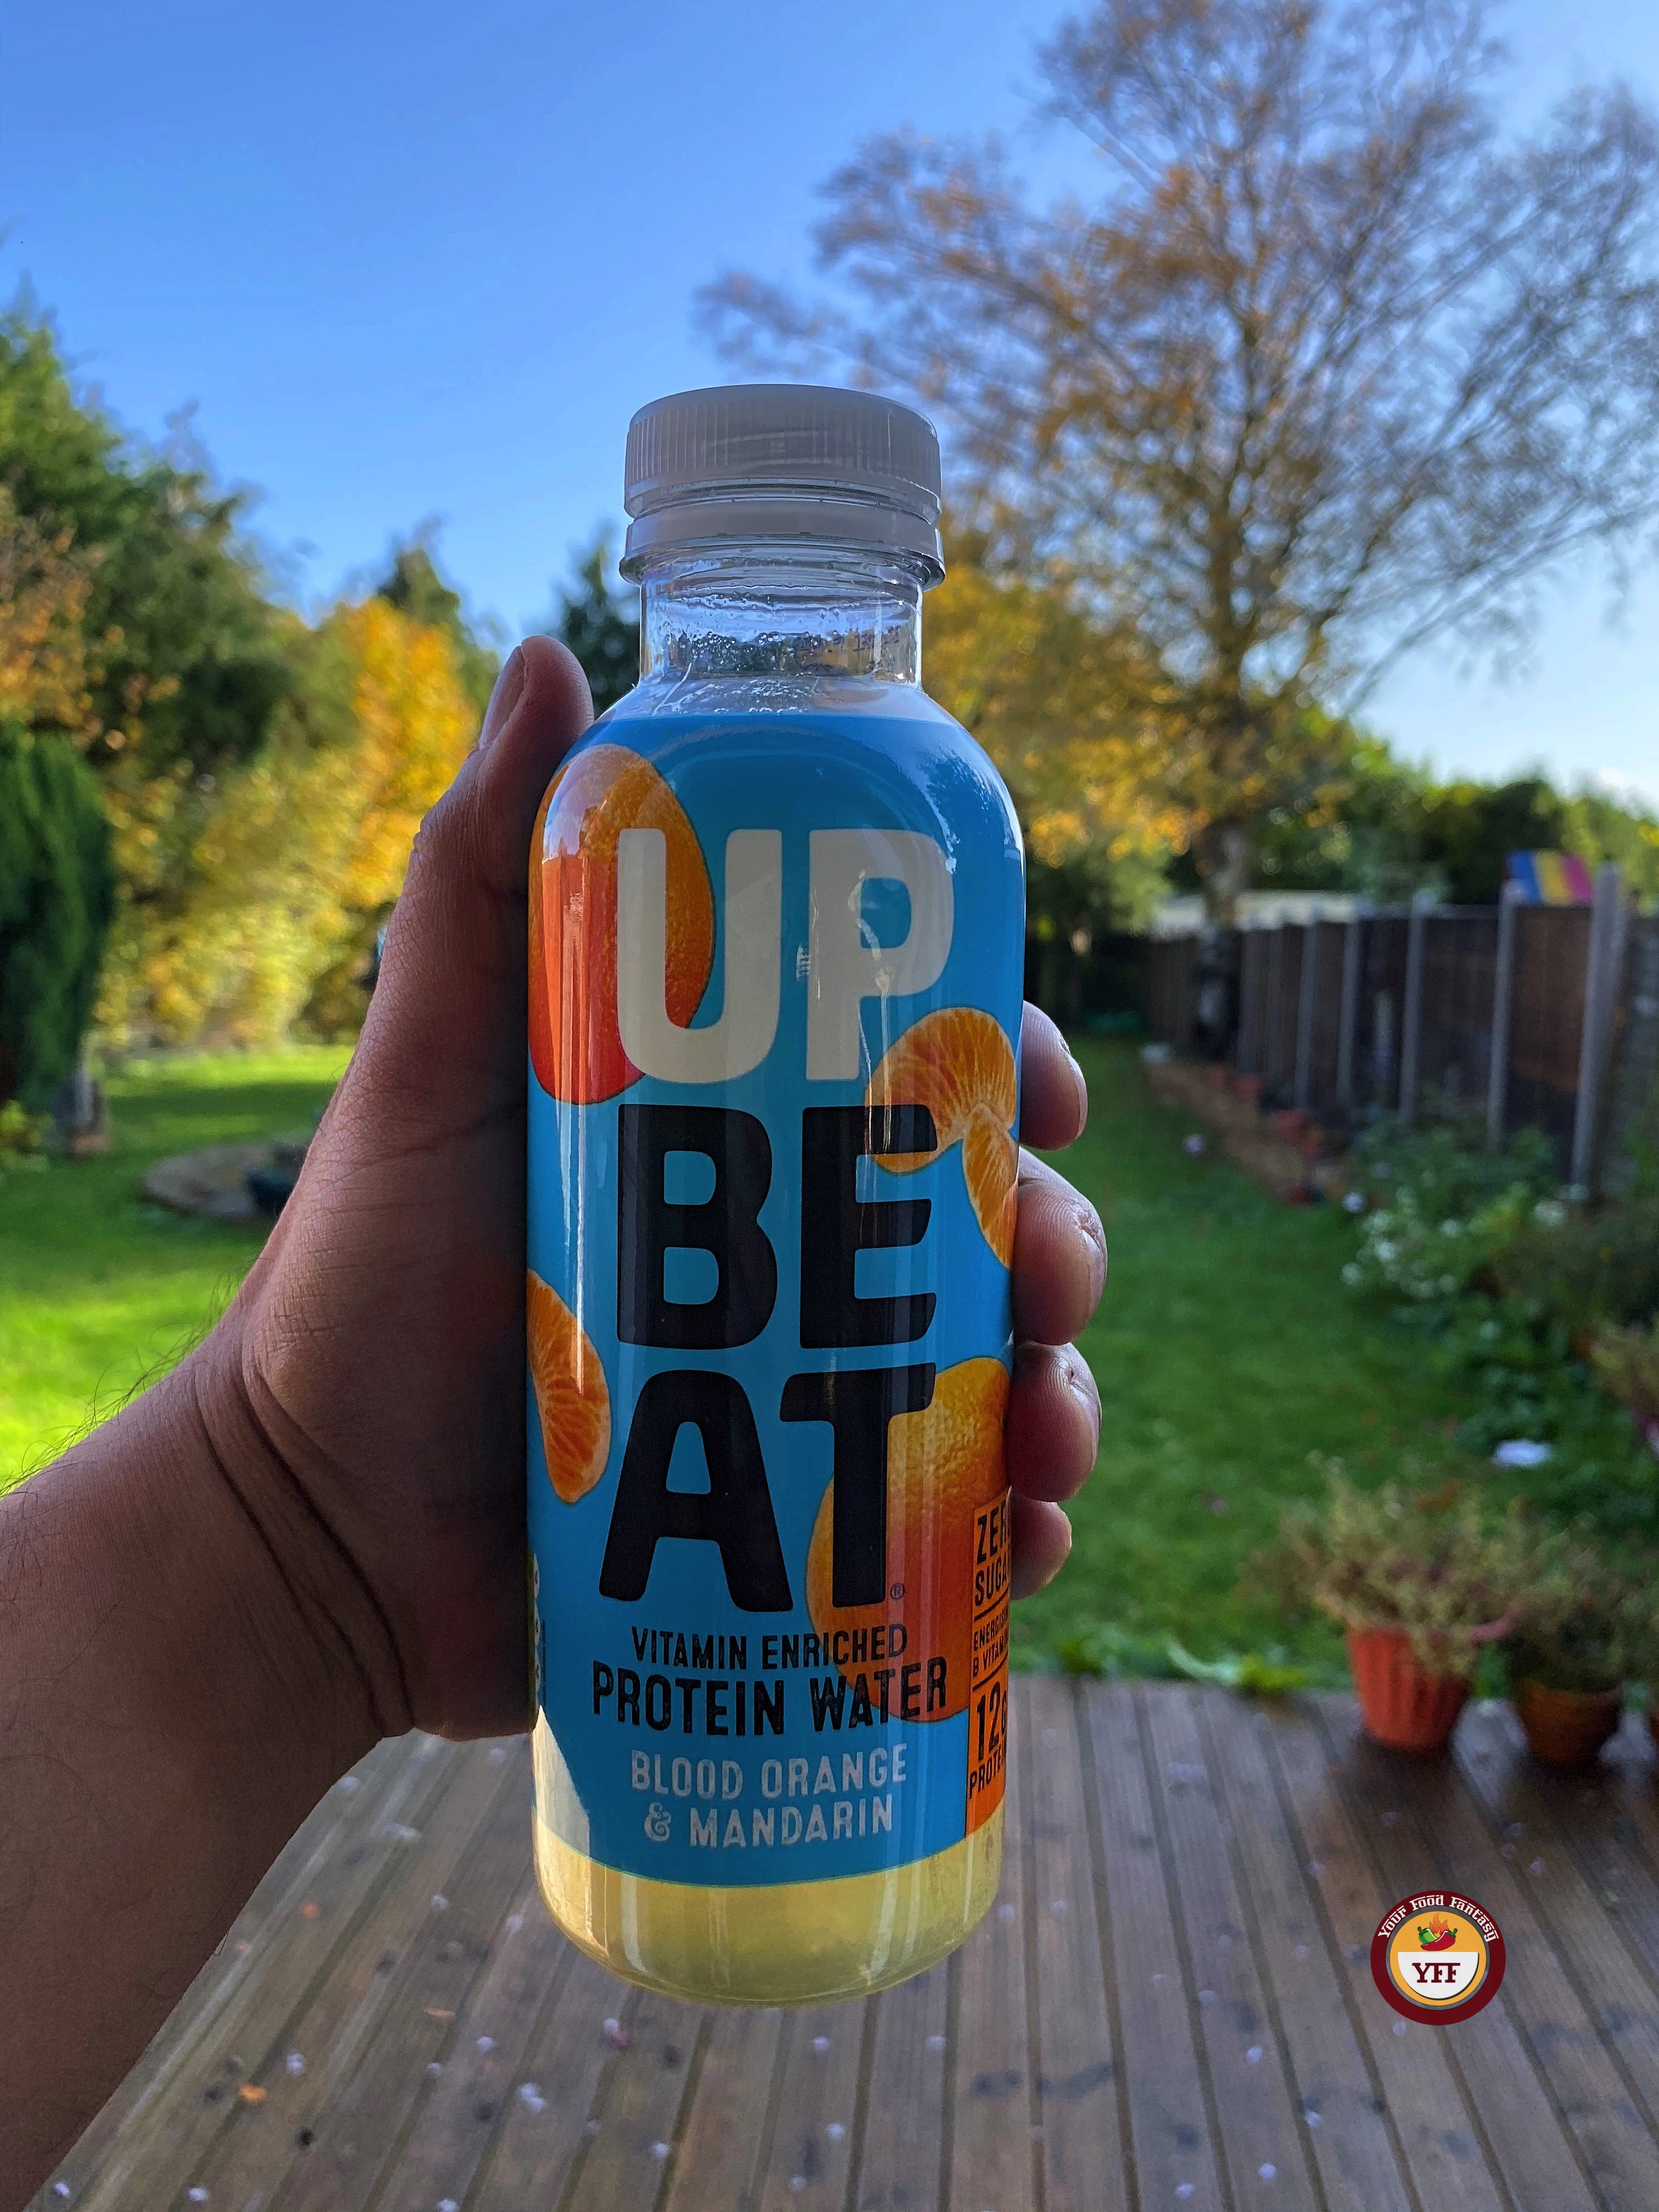 Upbeat Juicy Protein Water   Review by Your Food Fantasy